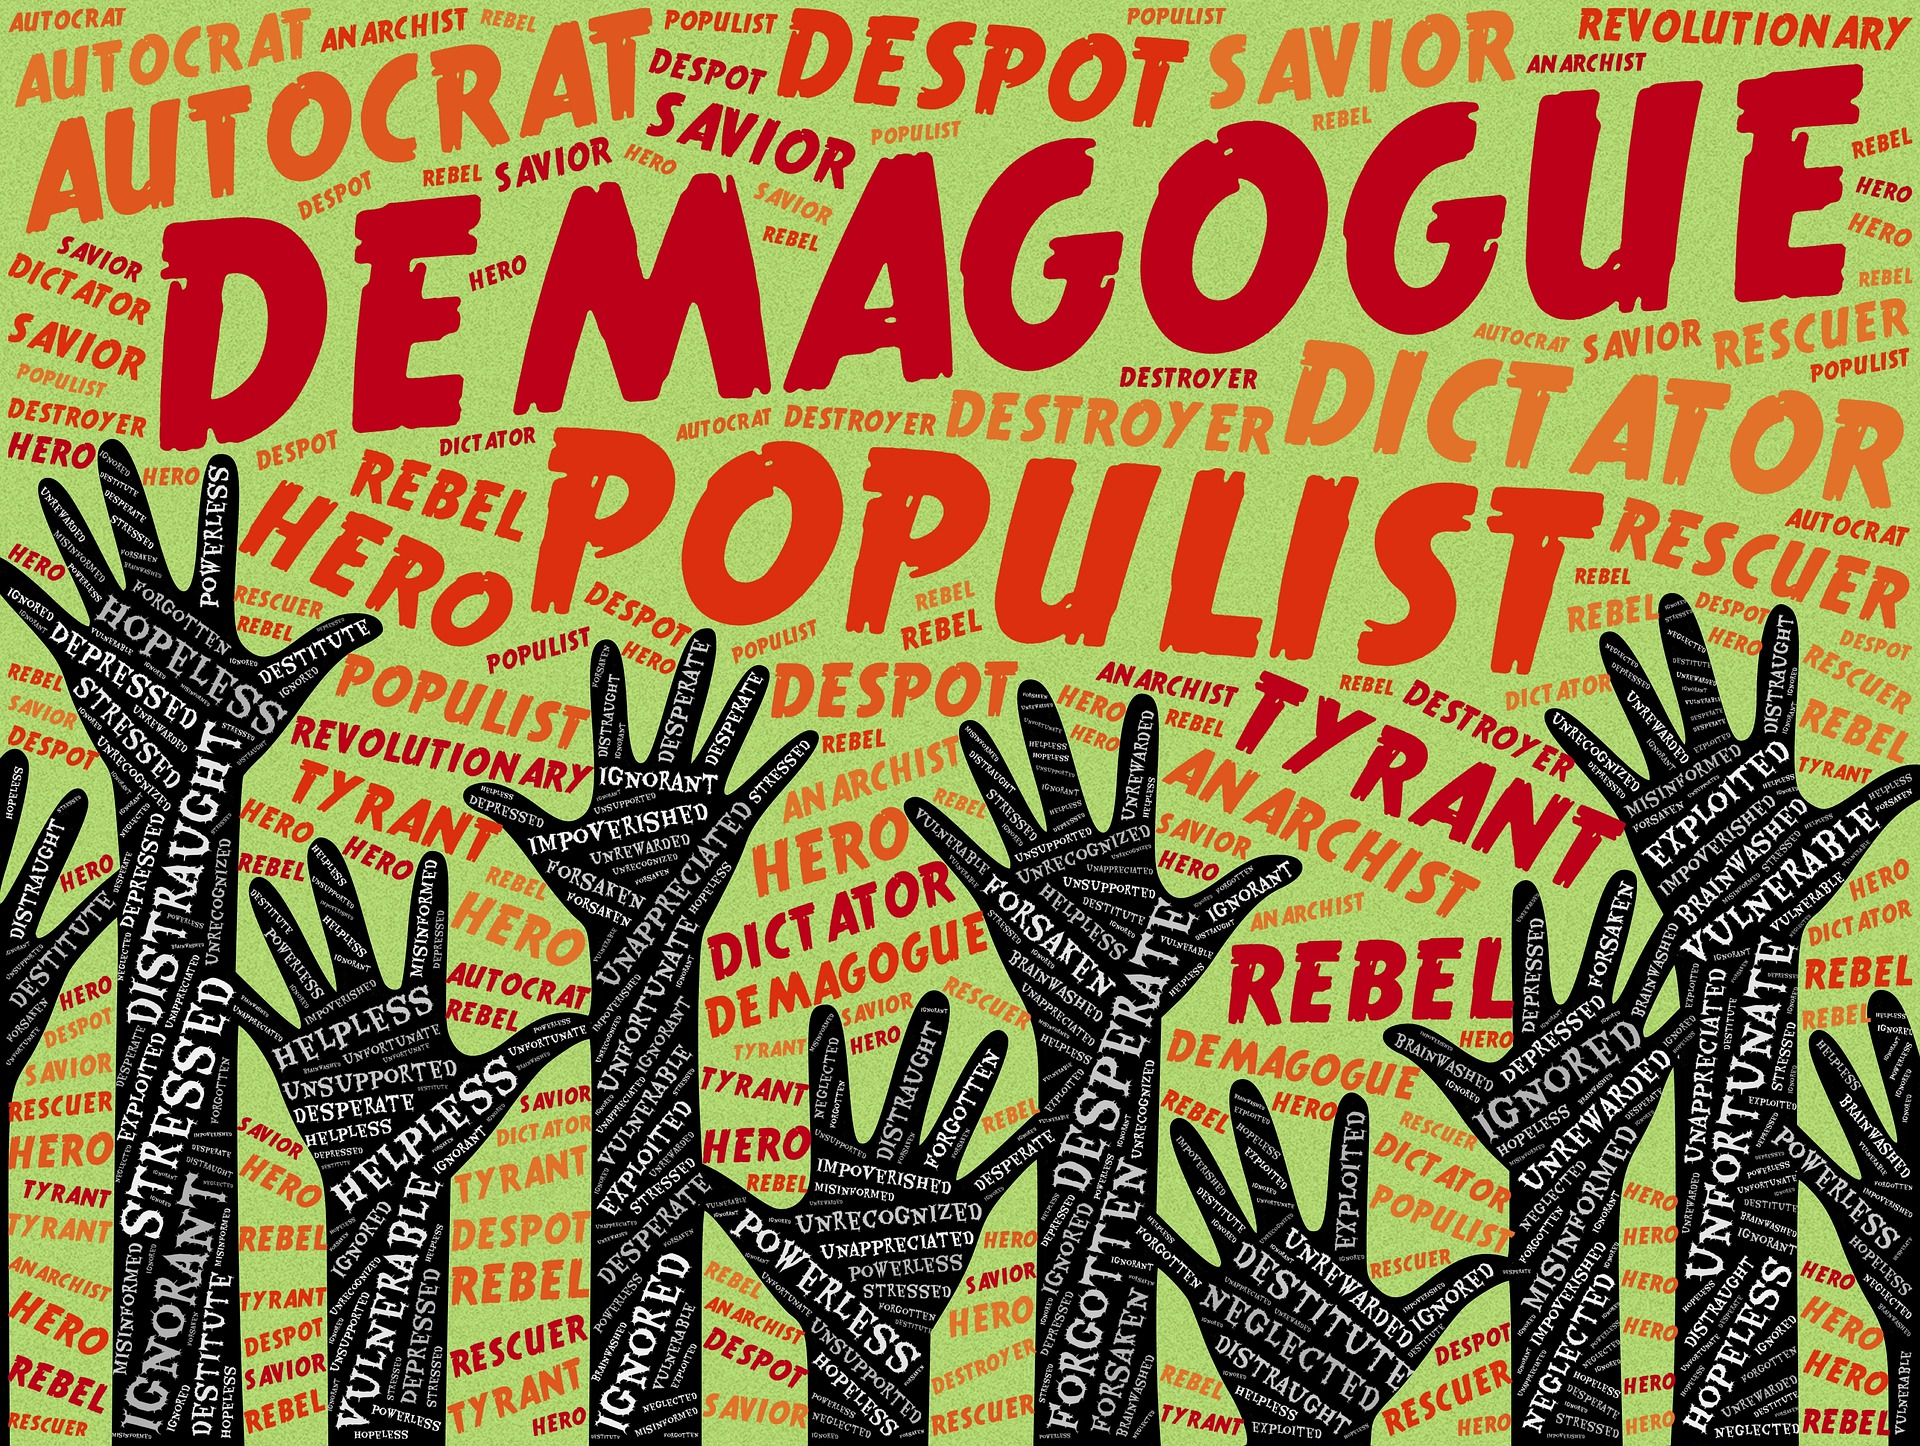 demagogue-2193093_1920